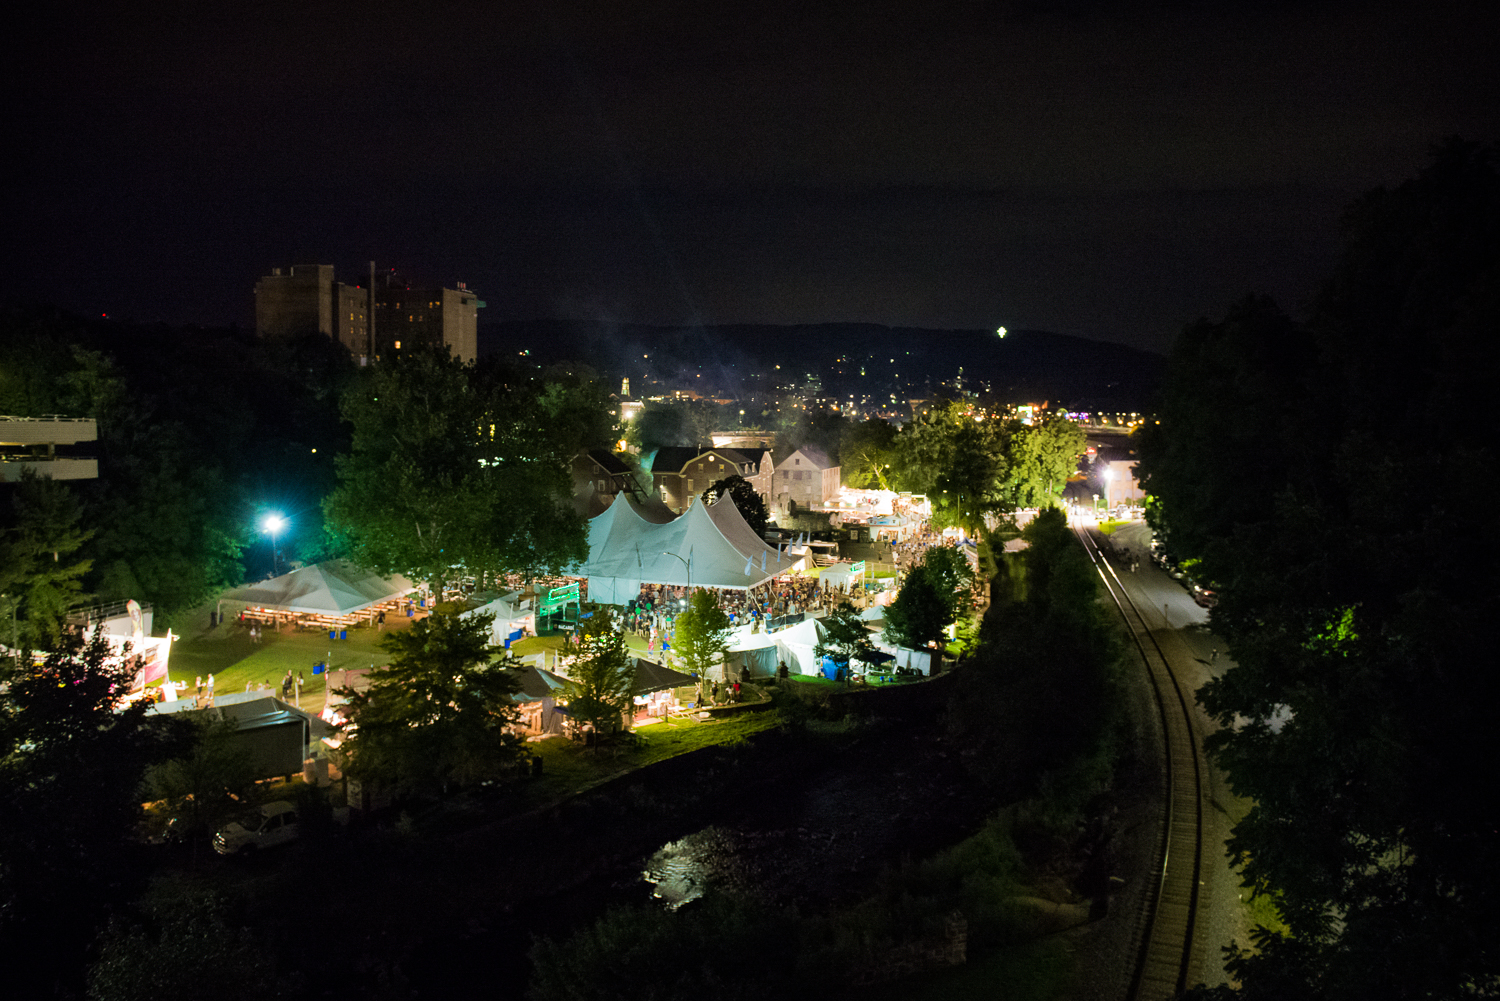 Atmosphere of Summer Music Festival  Musikfest, August 2016 in Bethlehem, Pennsylvania.  Volksplatz.